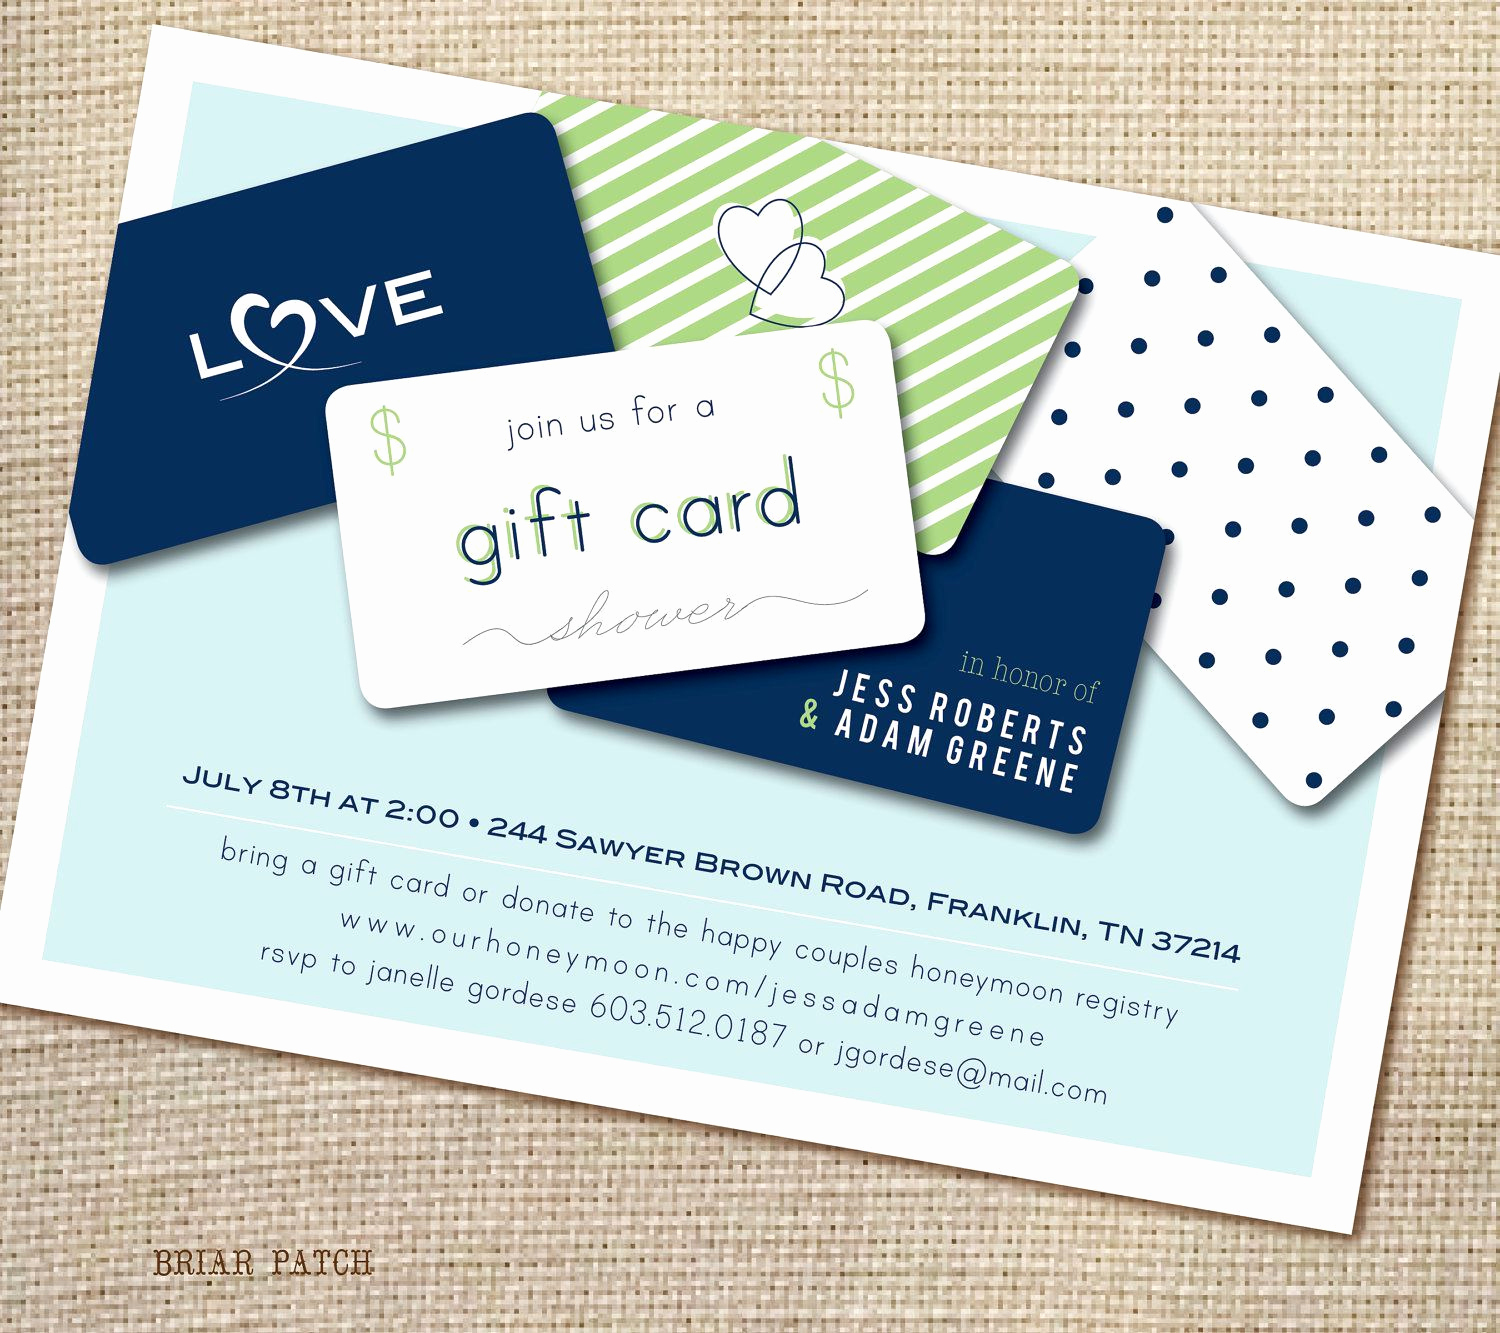 Gift Card Invitation Wording Unique T Card Bridal Shower Invitation Wording